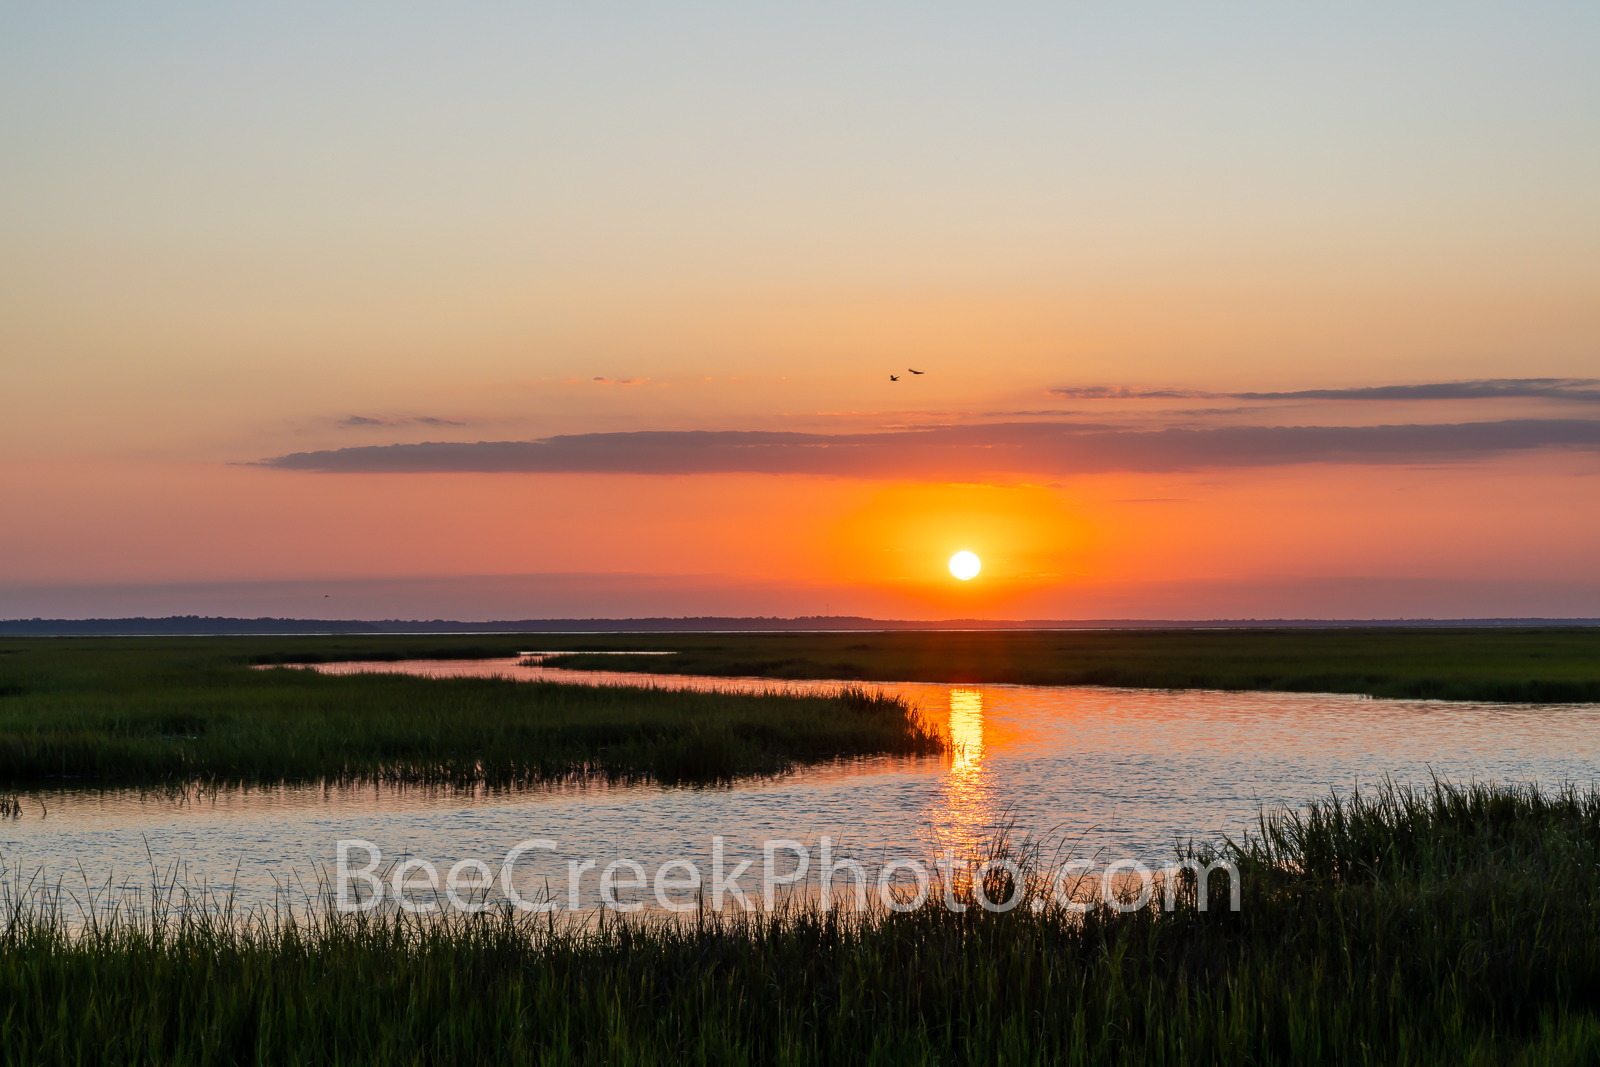 Jekyll island, jekyll river, marshlands, sunset, salt marsh, marsh wetlands, golden isles, shrimp, golden color, season, barrier island,  george coast, coastal, 